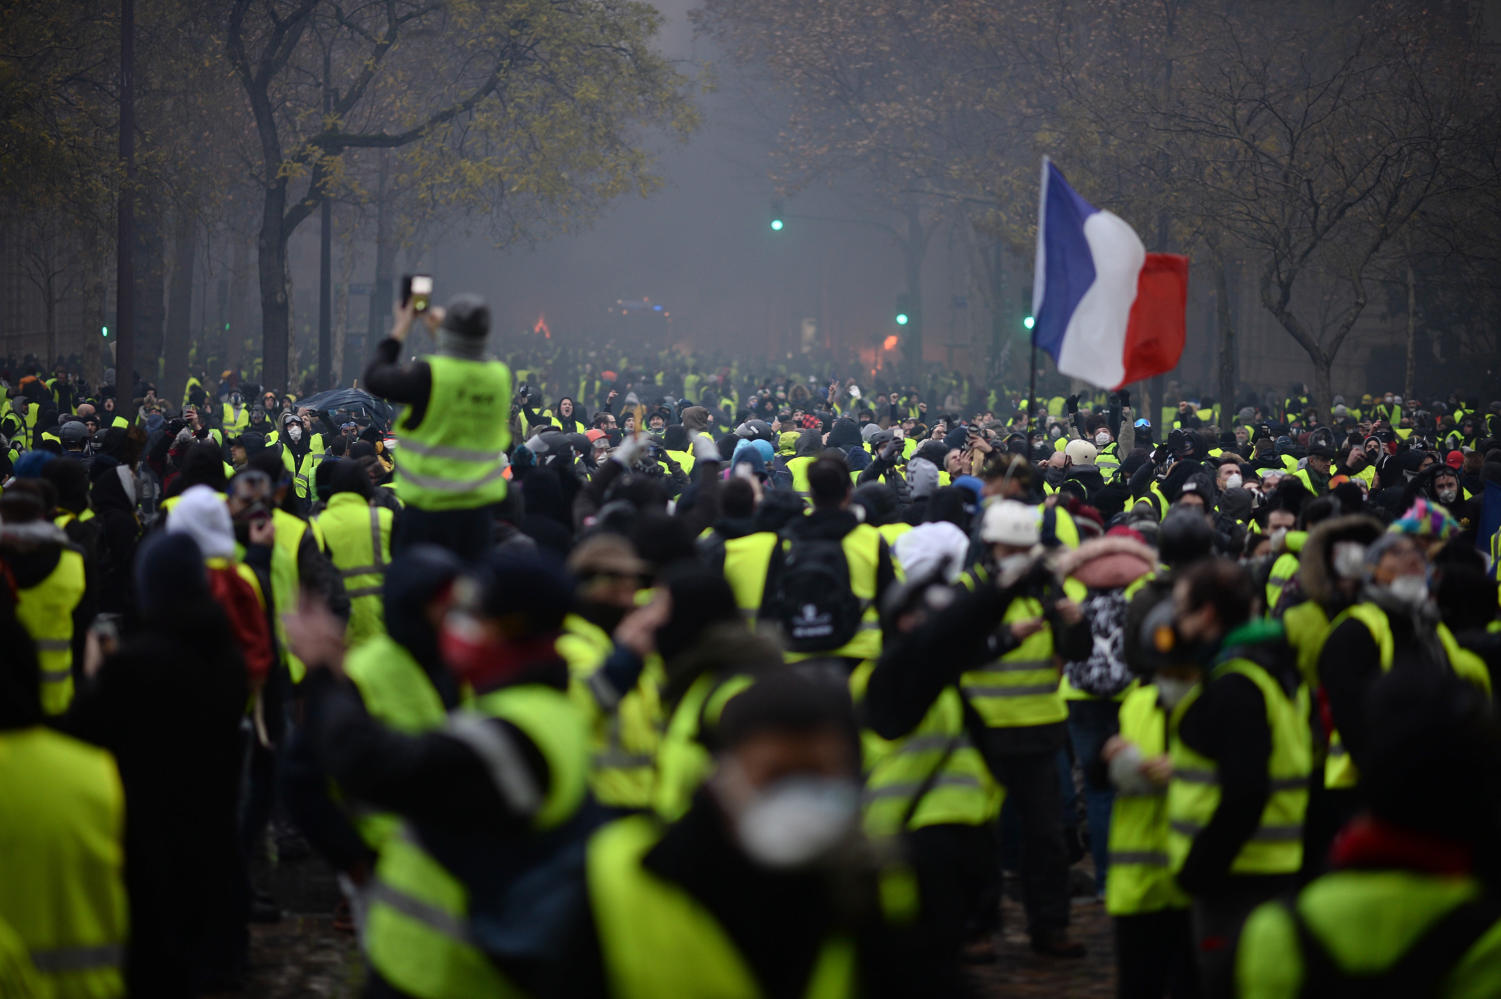 Yellow vests (Gilets jaunes) protest against rising oil prices and living costs on the Champs Elysees in Paris, France, on Dec. 1, 2018. Thousands of anti-government protesters are expected today on the Champs-Elysees in Paris, a week after a violent demonstration on the famed avenue was marked by burning barricades and rampant vandalism that President Emmanuel Macron compared to